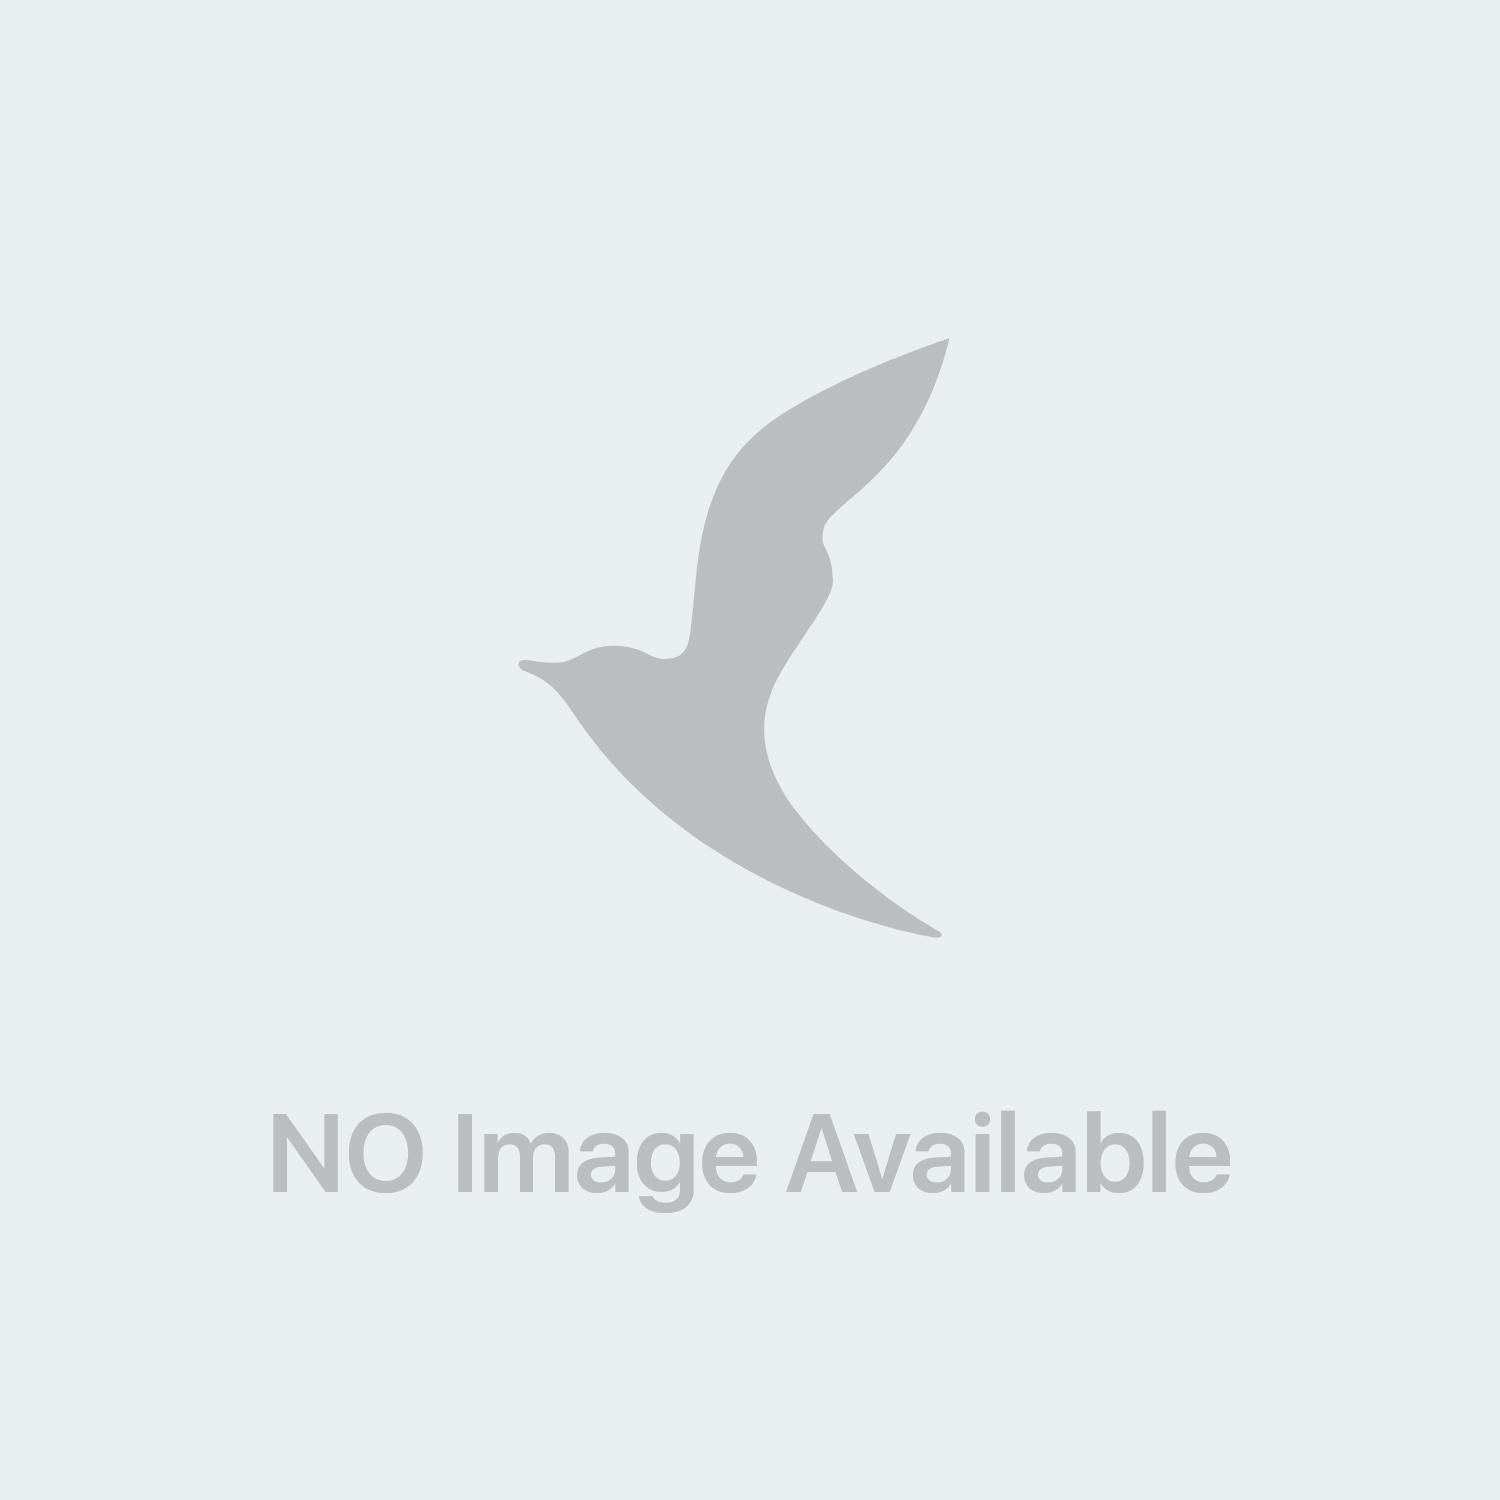 Fish Factor Plus Integratore Omega 3 Alta Concentrazione 60 Perle Piccole